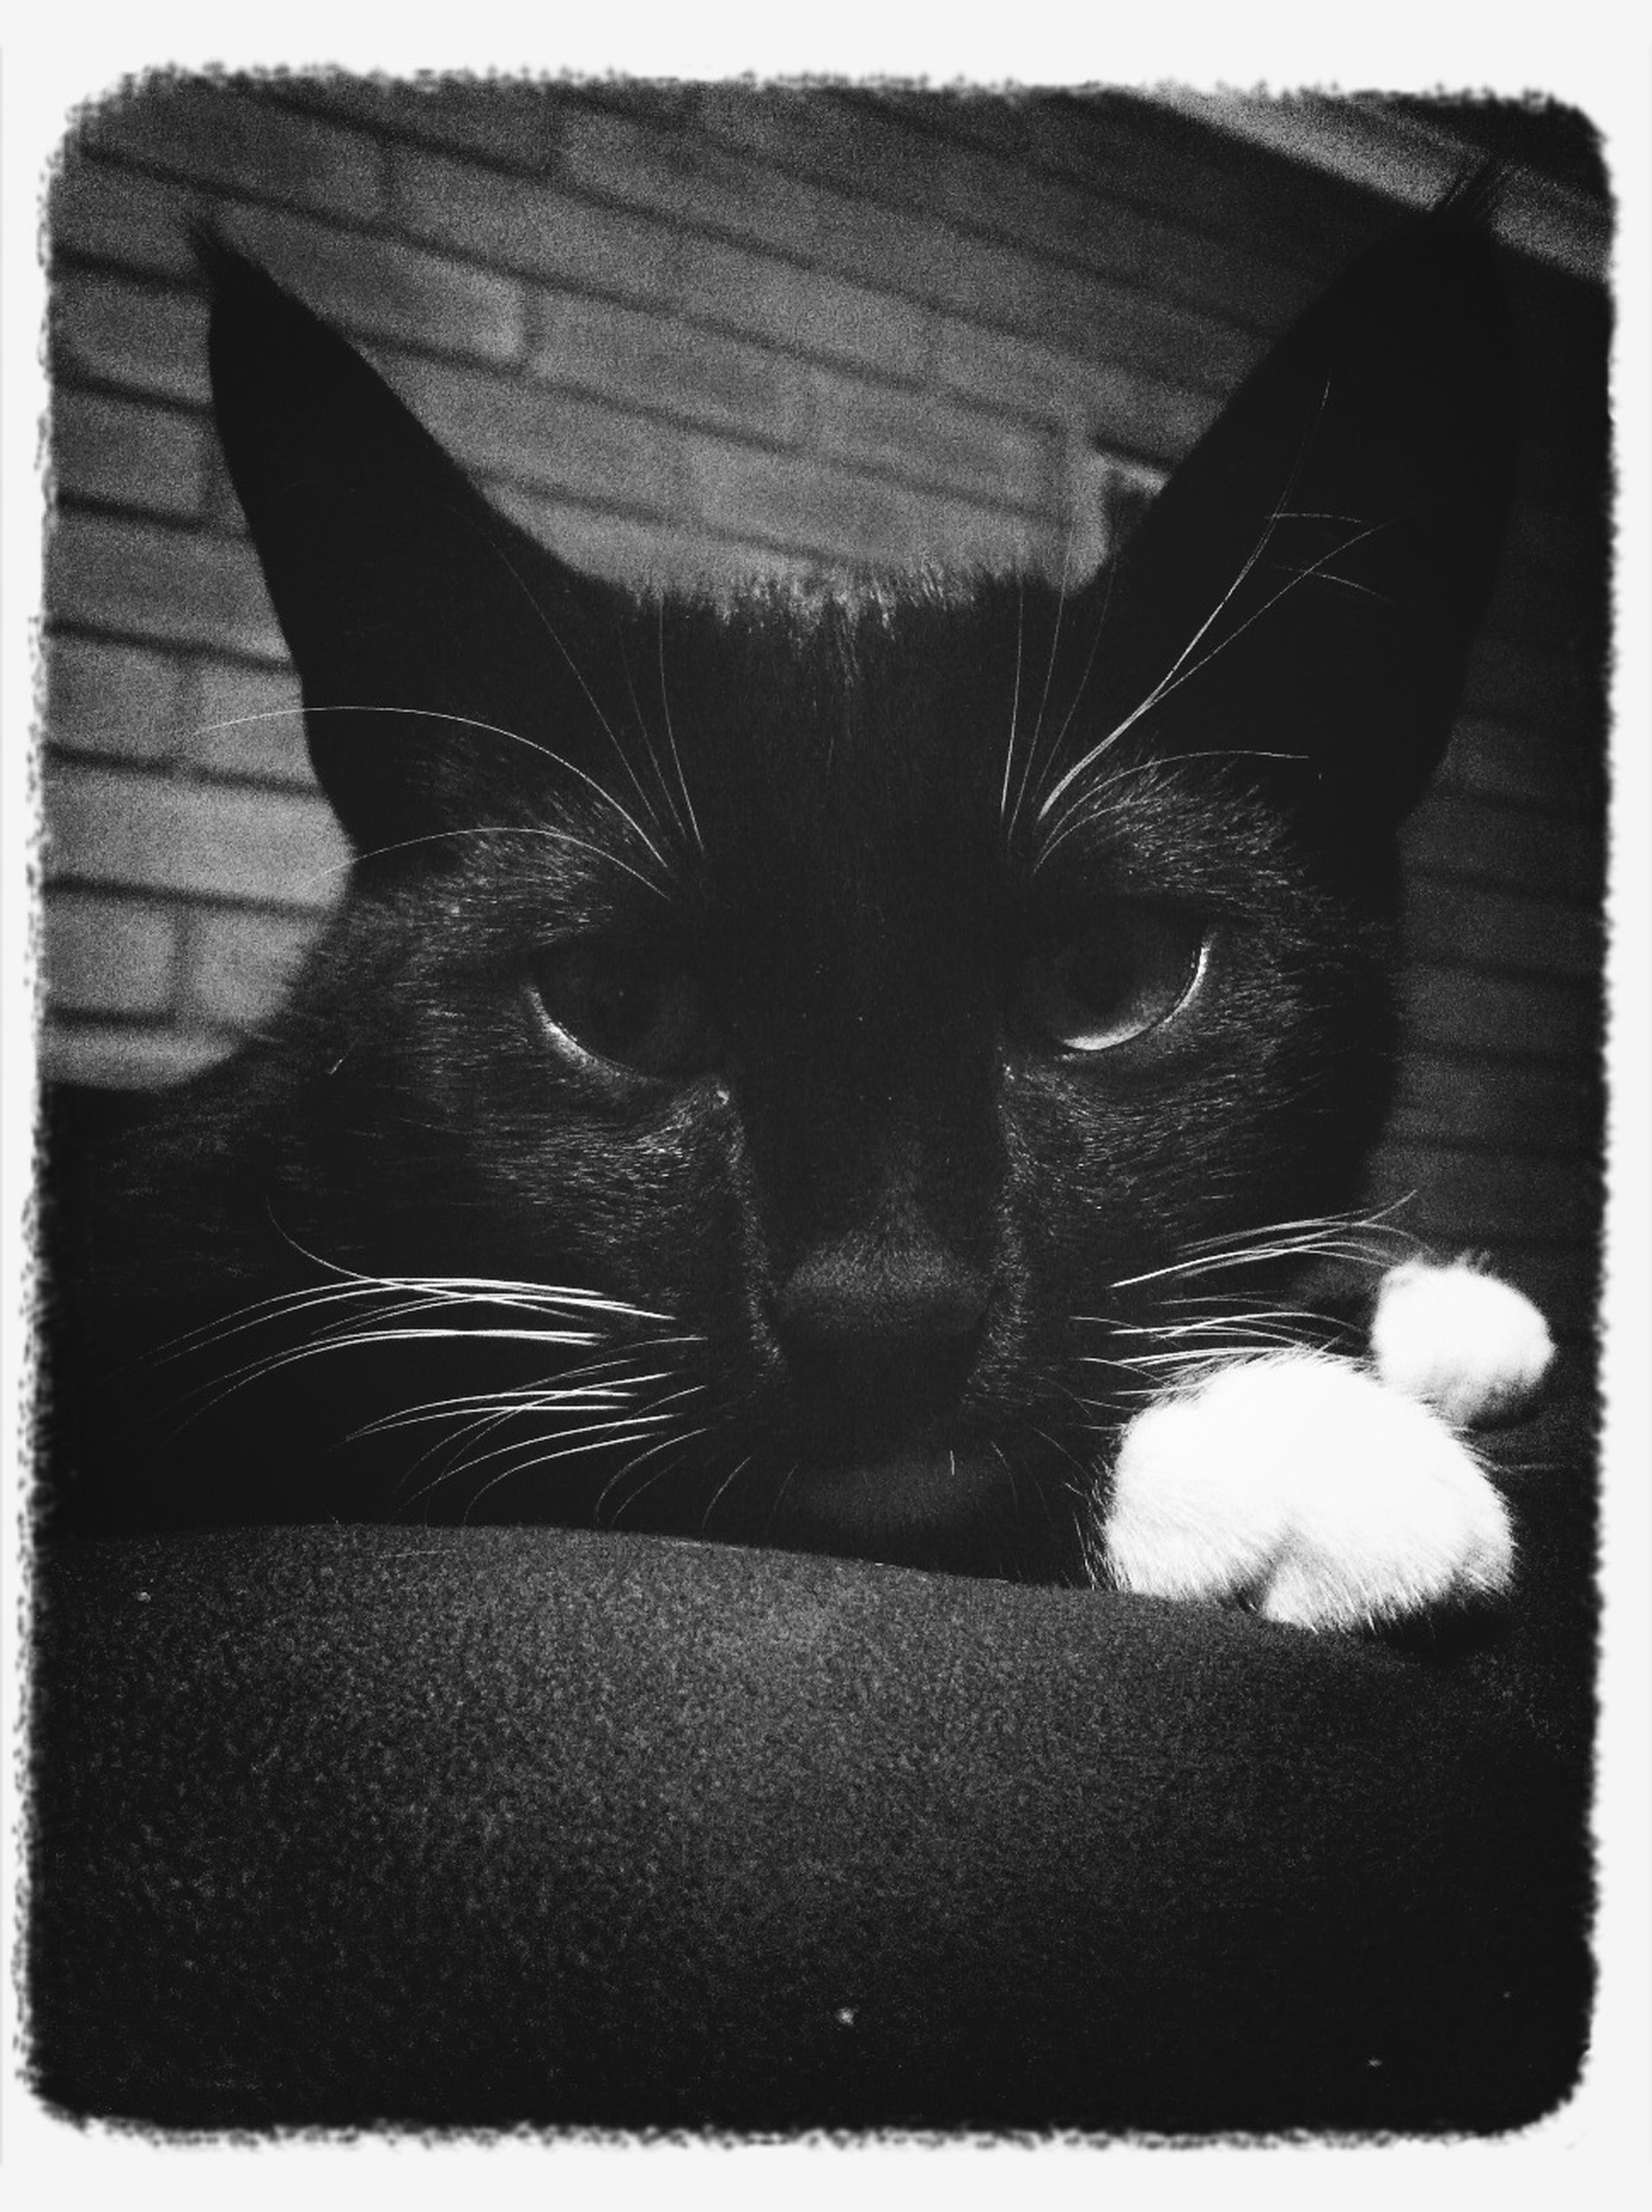 domestic cat, pets, domestic animals, animal themes, one animal, cat, feline, mammal, whisker, indoors, transfer print, relaxation, close-up, animal head, portrait, lying down, looking at camera, resting, auto post production filter, black color